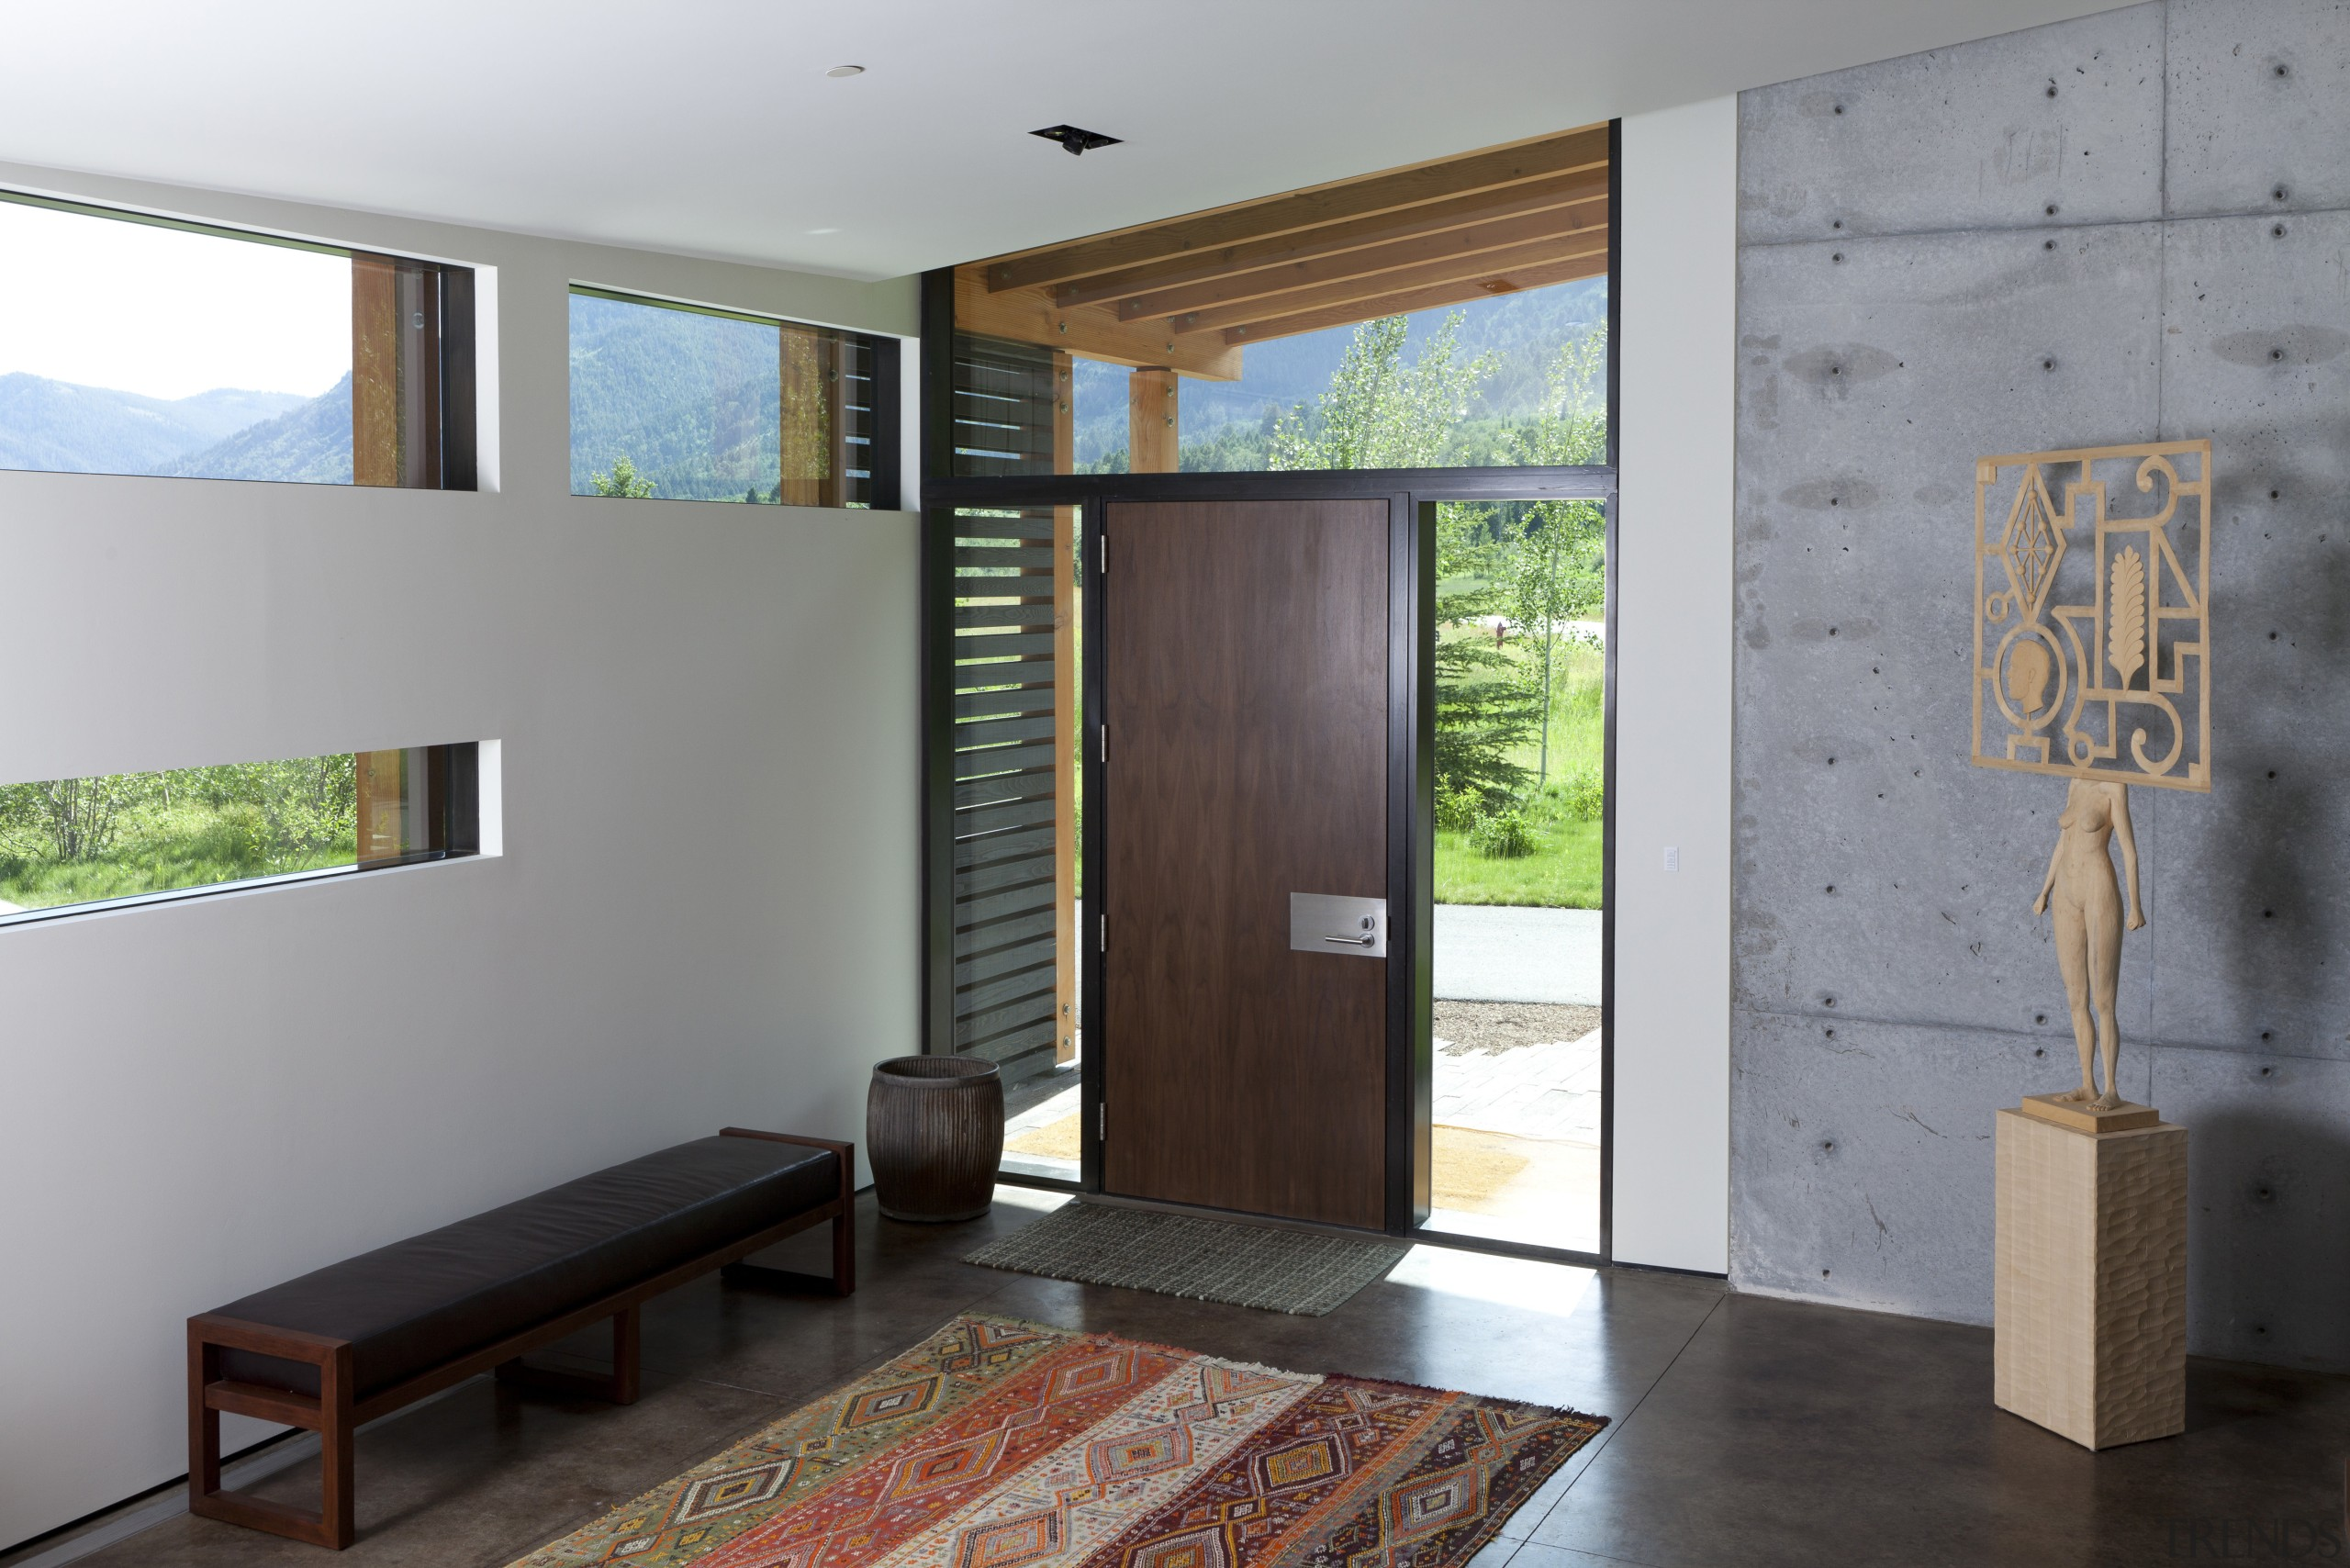 The entry to this mountain home  by architecture, ceiling, door, floor, house, interior design, wall, gray